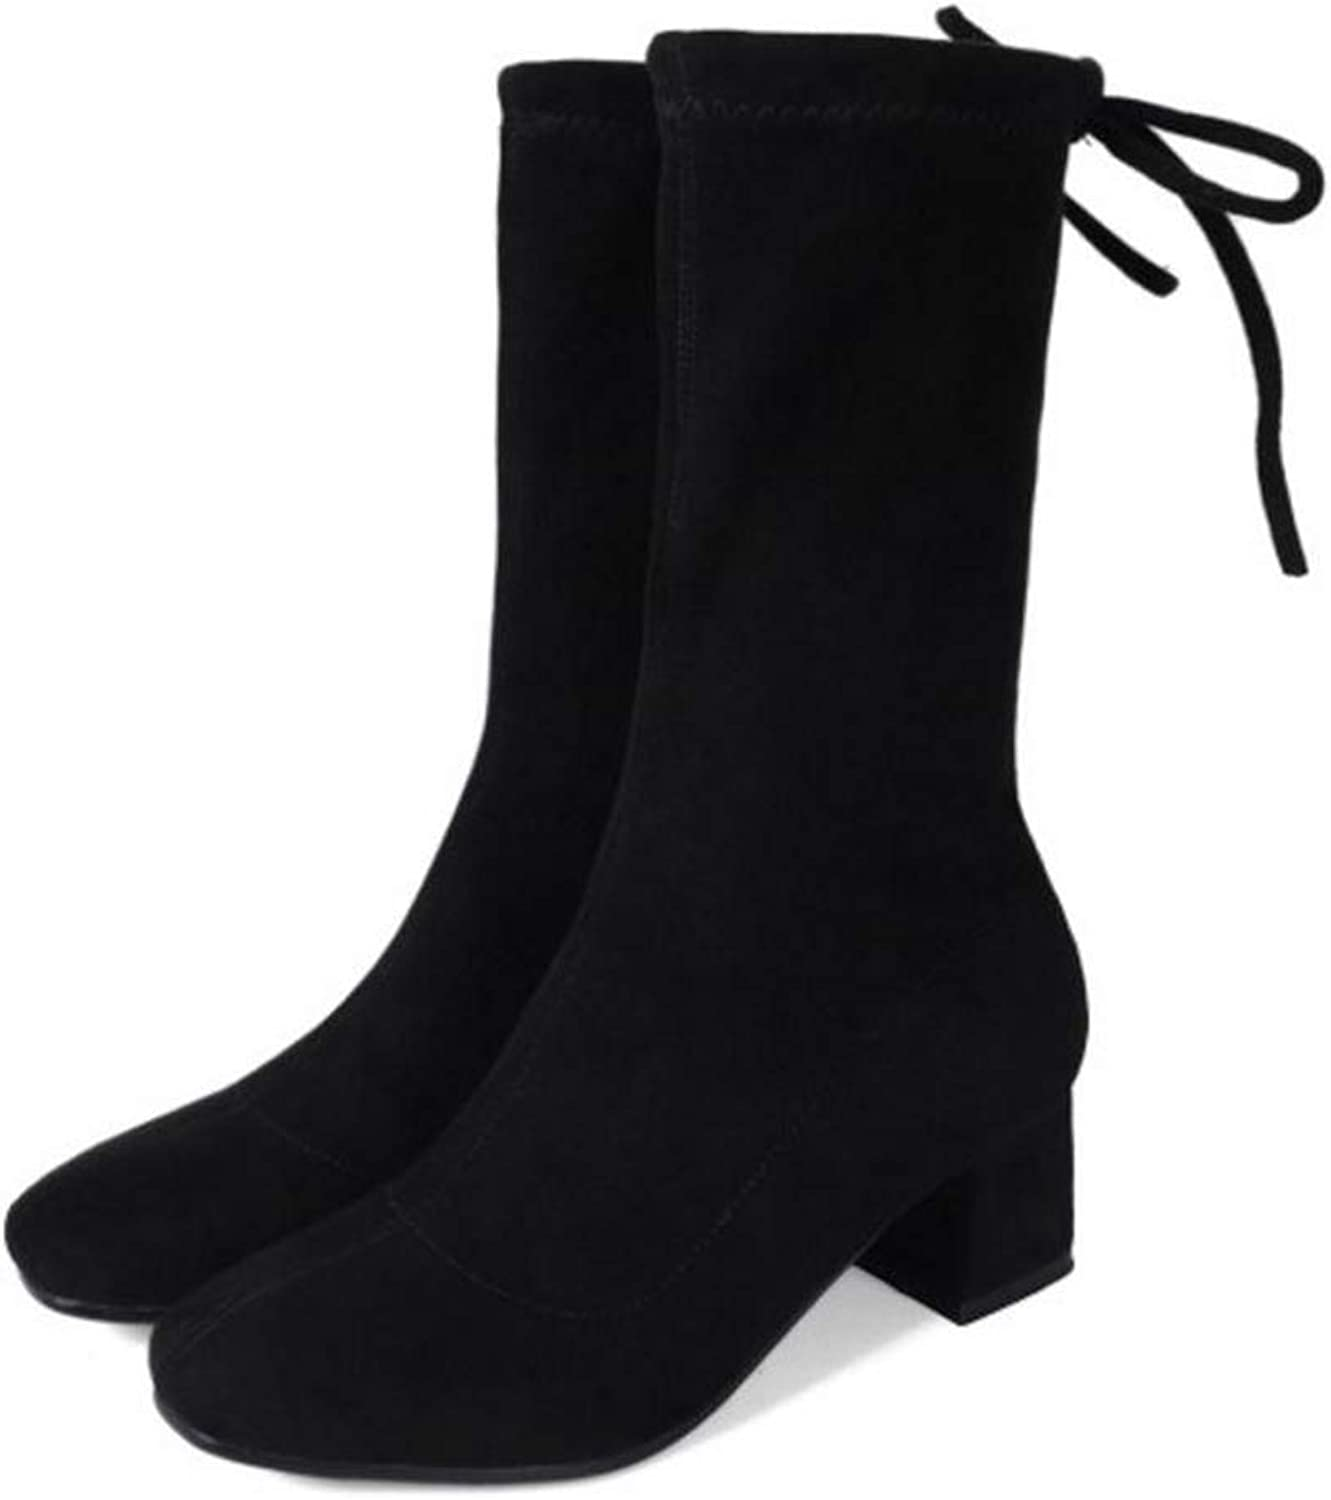 FAY WATERS Womens Fashion Warm Short Boots Thick Heel Lace Up Round Toe Winter Mid Calf Booties